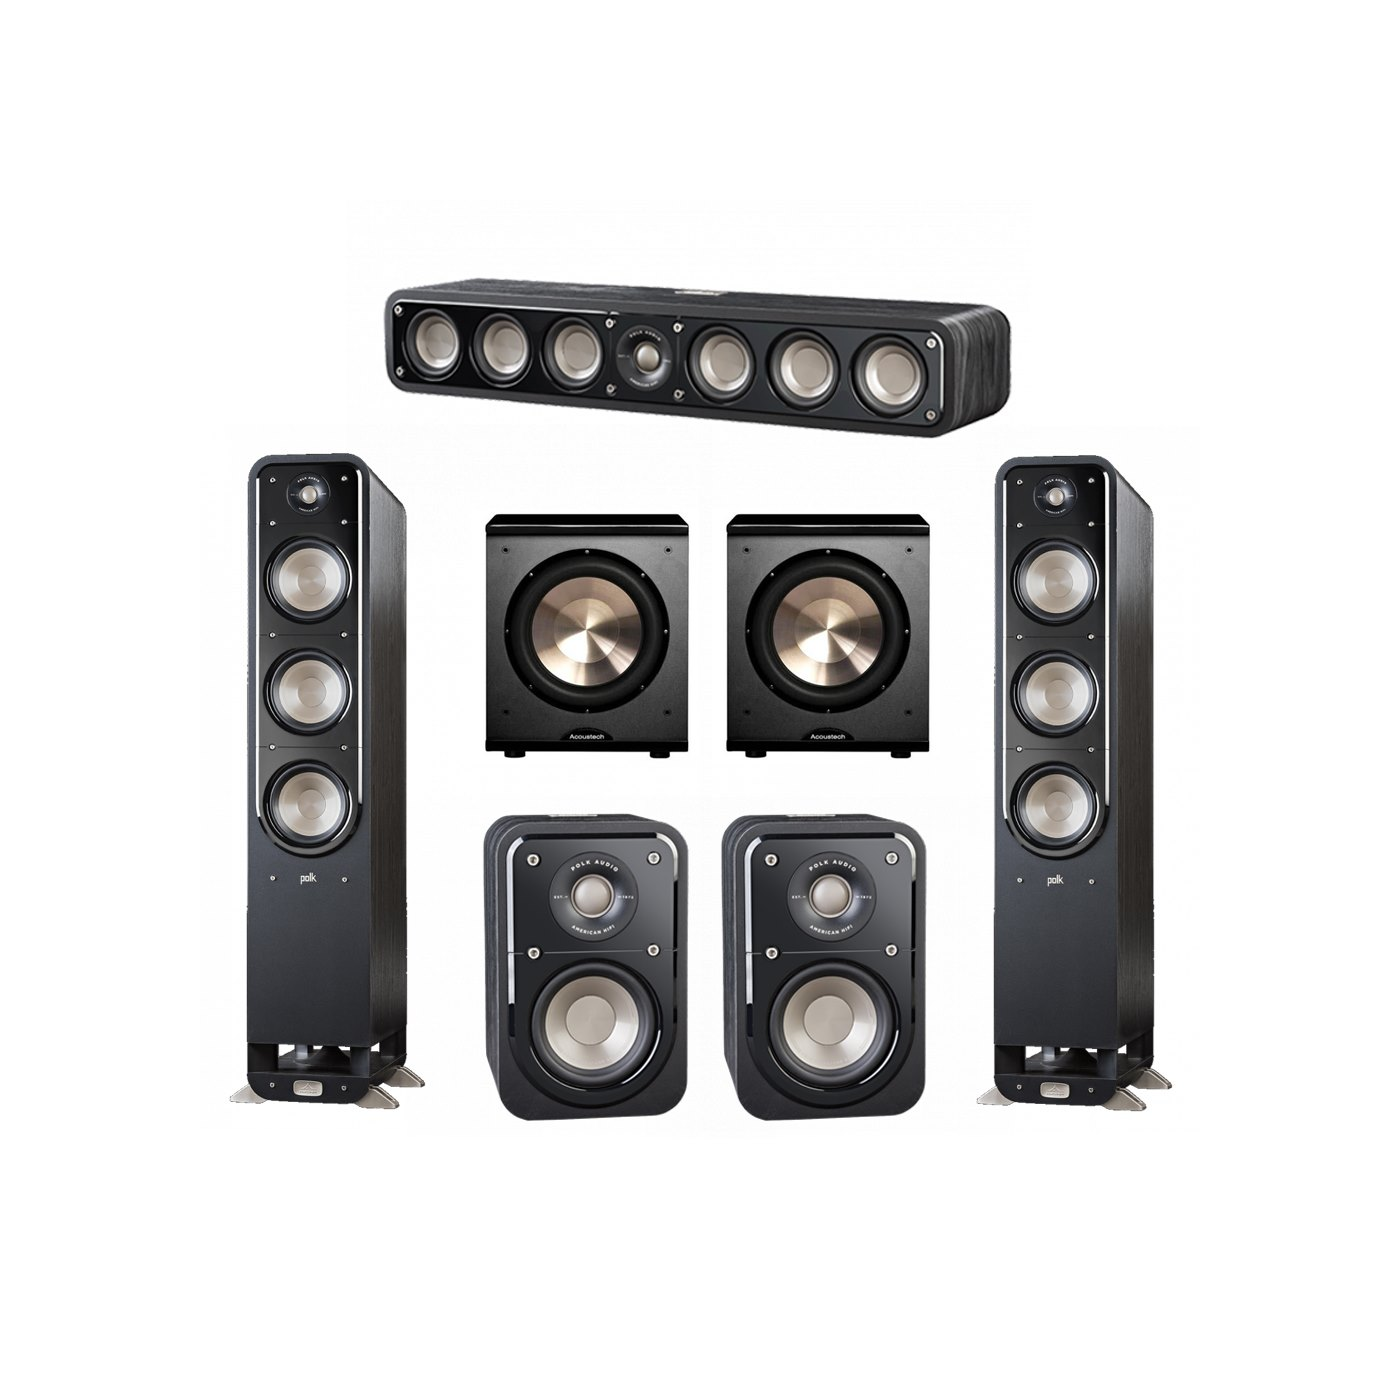 Polk Audio Signature 5.2 System with 2 S60 Tower Speaker, 1 Polk S35 Center Speaker, 2 Polk S10 Surround Speaker, 2 BIC/Acoustech Platinum Series PL-200 Subwoofer